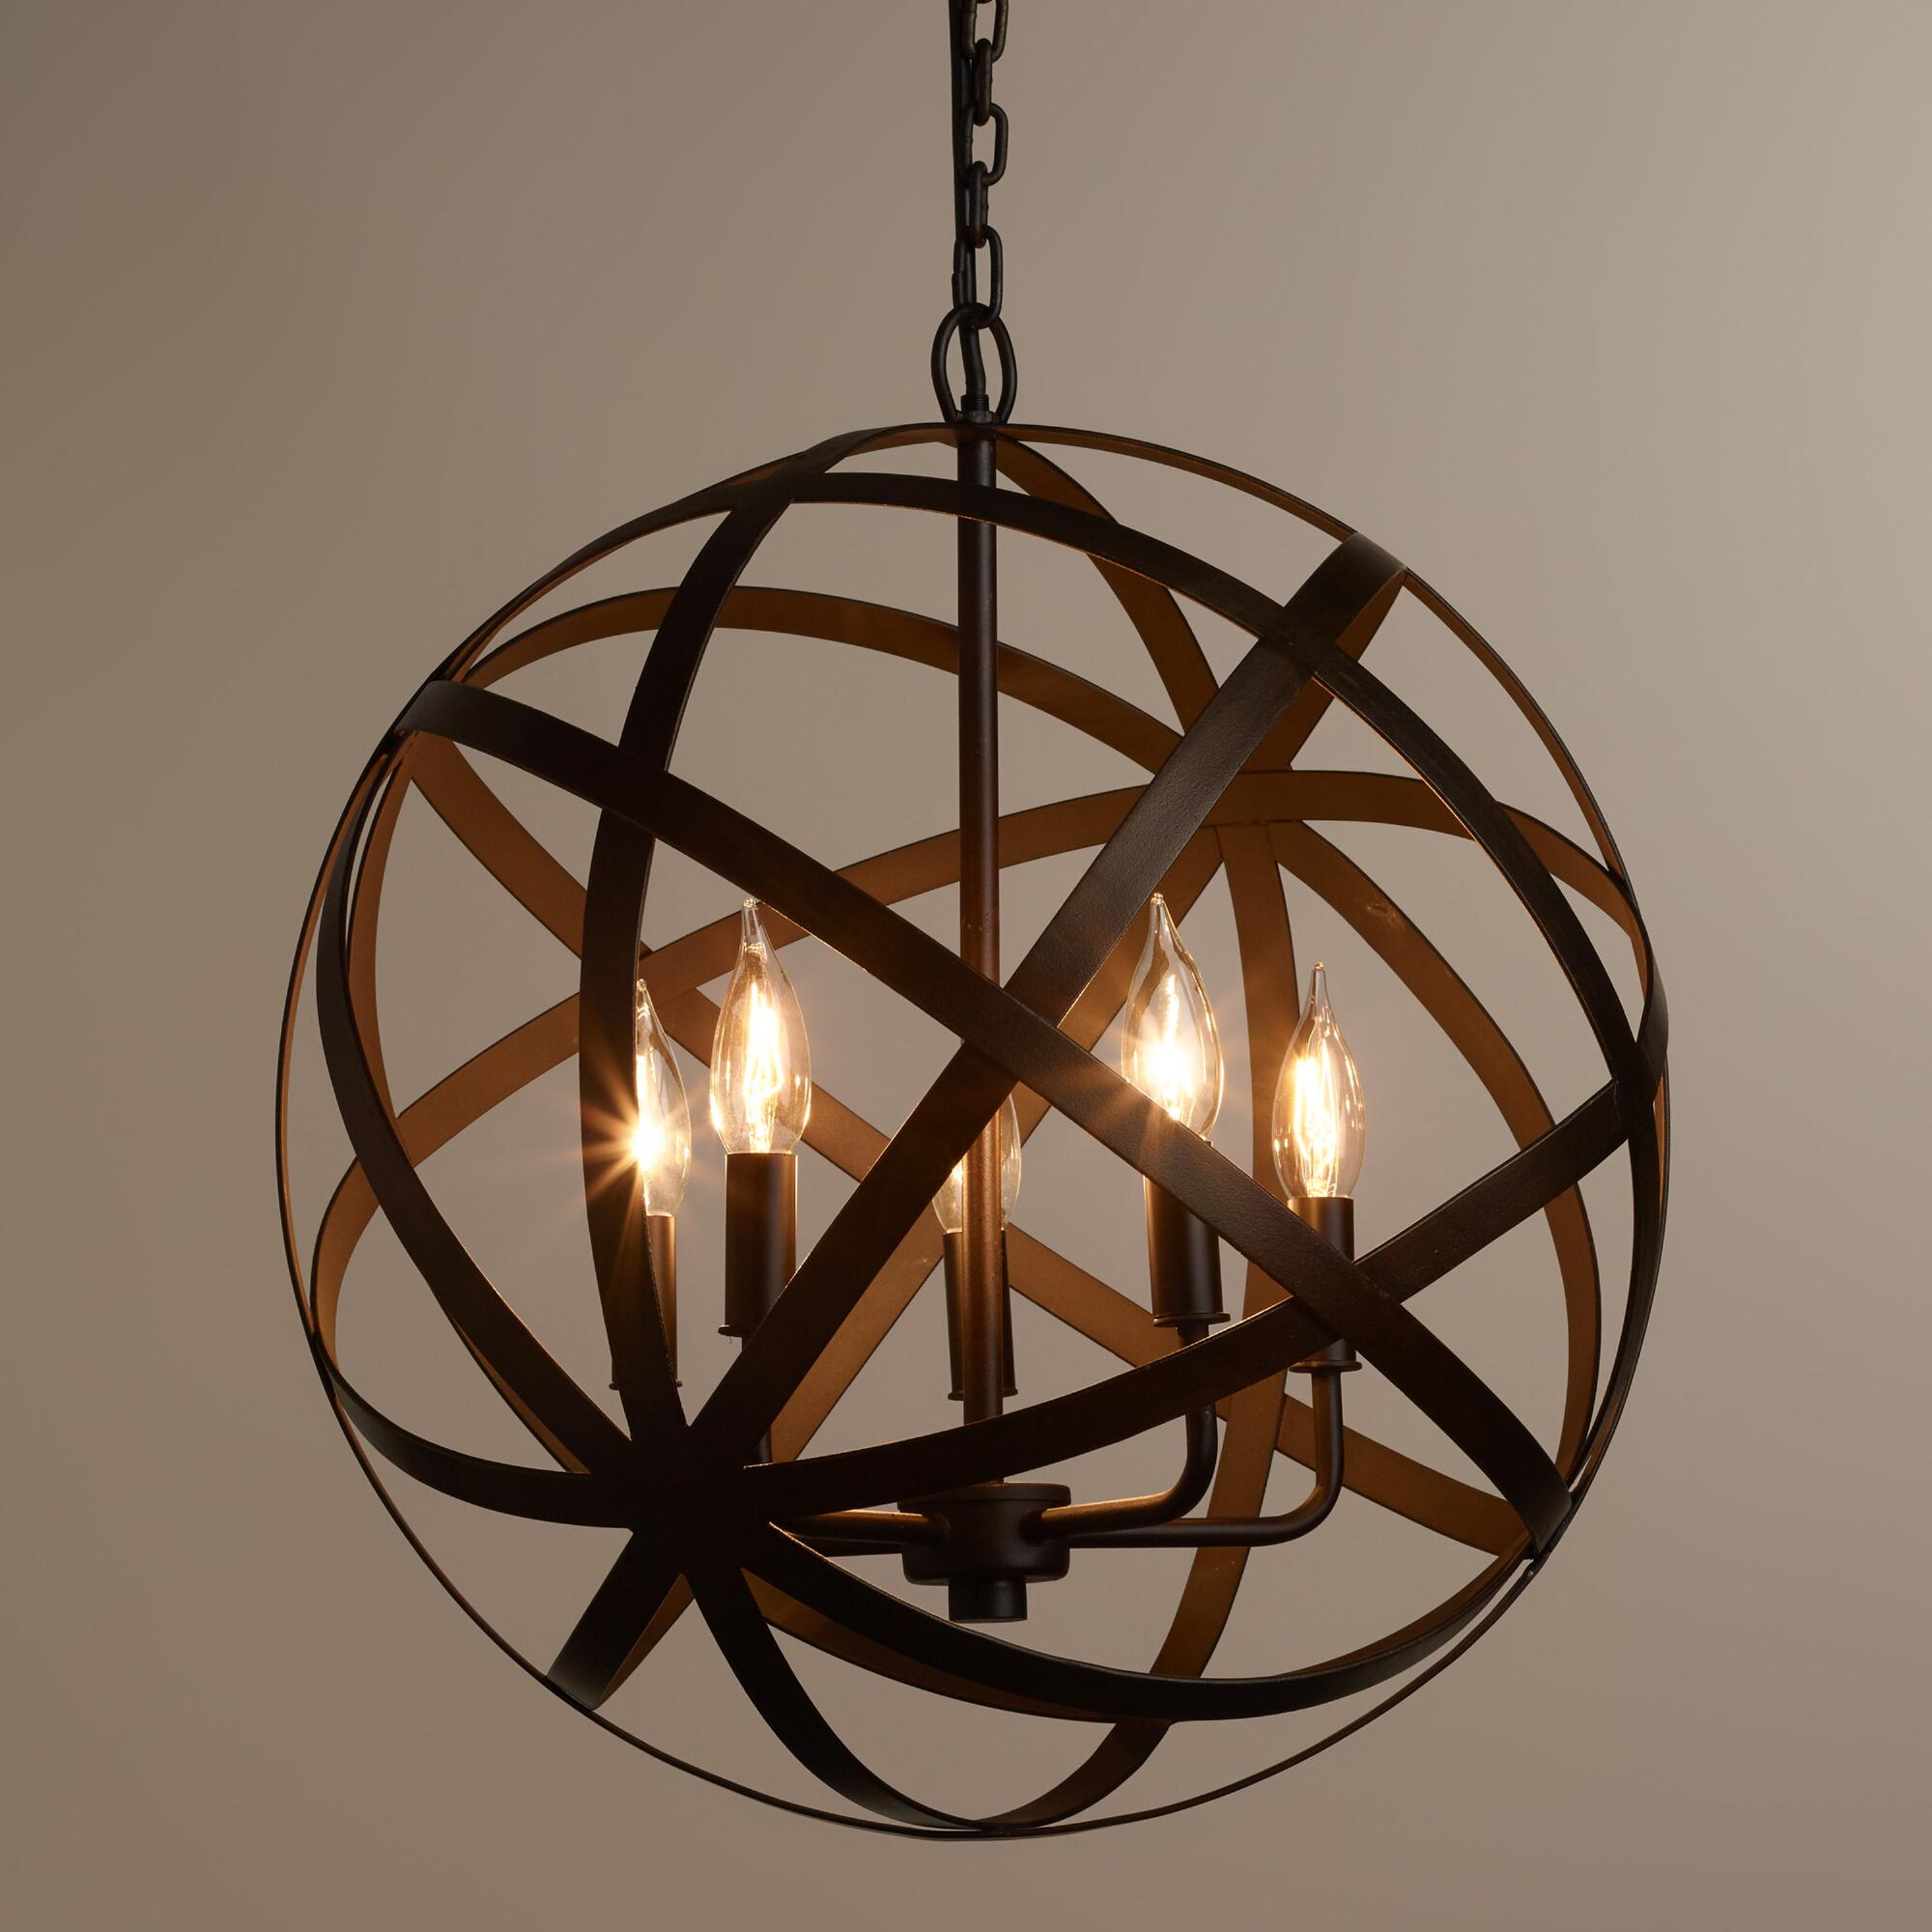 Enjoyable unique design of orbit chandelier with iron or stainless for ceiling lighting decorating ideas